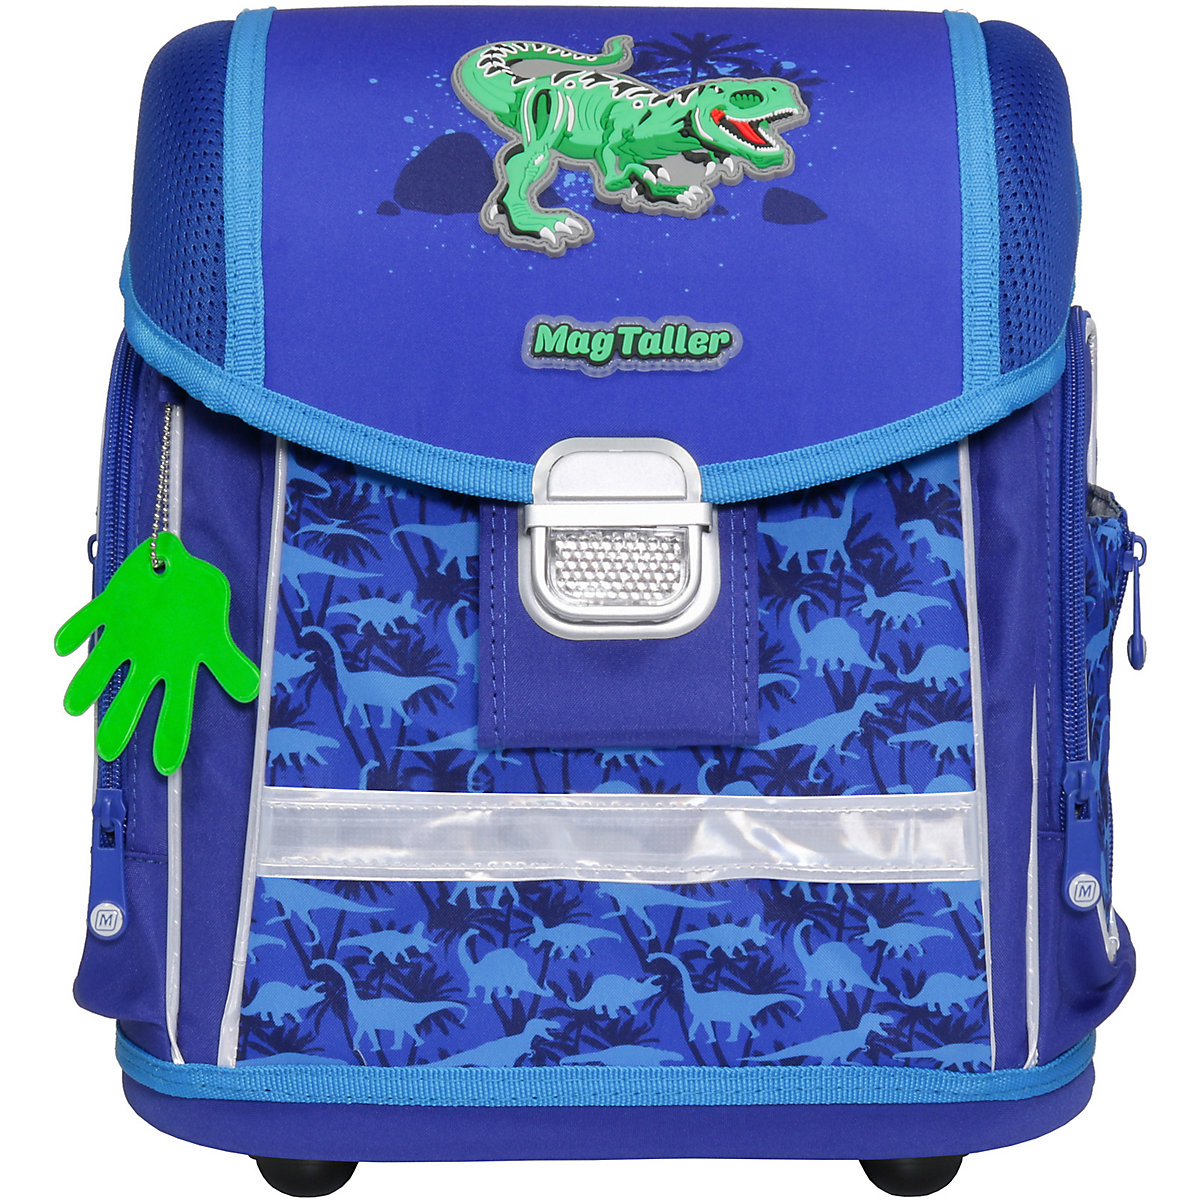 School Bags MAGTALLER 11154952 schoolbag backpack knapsacks orthopedic bag for boy and girl animals flower sprints school bags magtaller 11154976 schoolbag backpack knapsacks orthopedic bag for boy and girl animals flower sprints